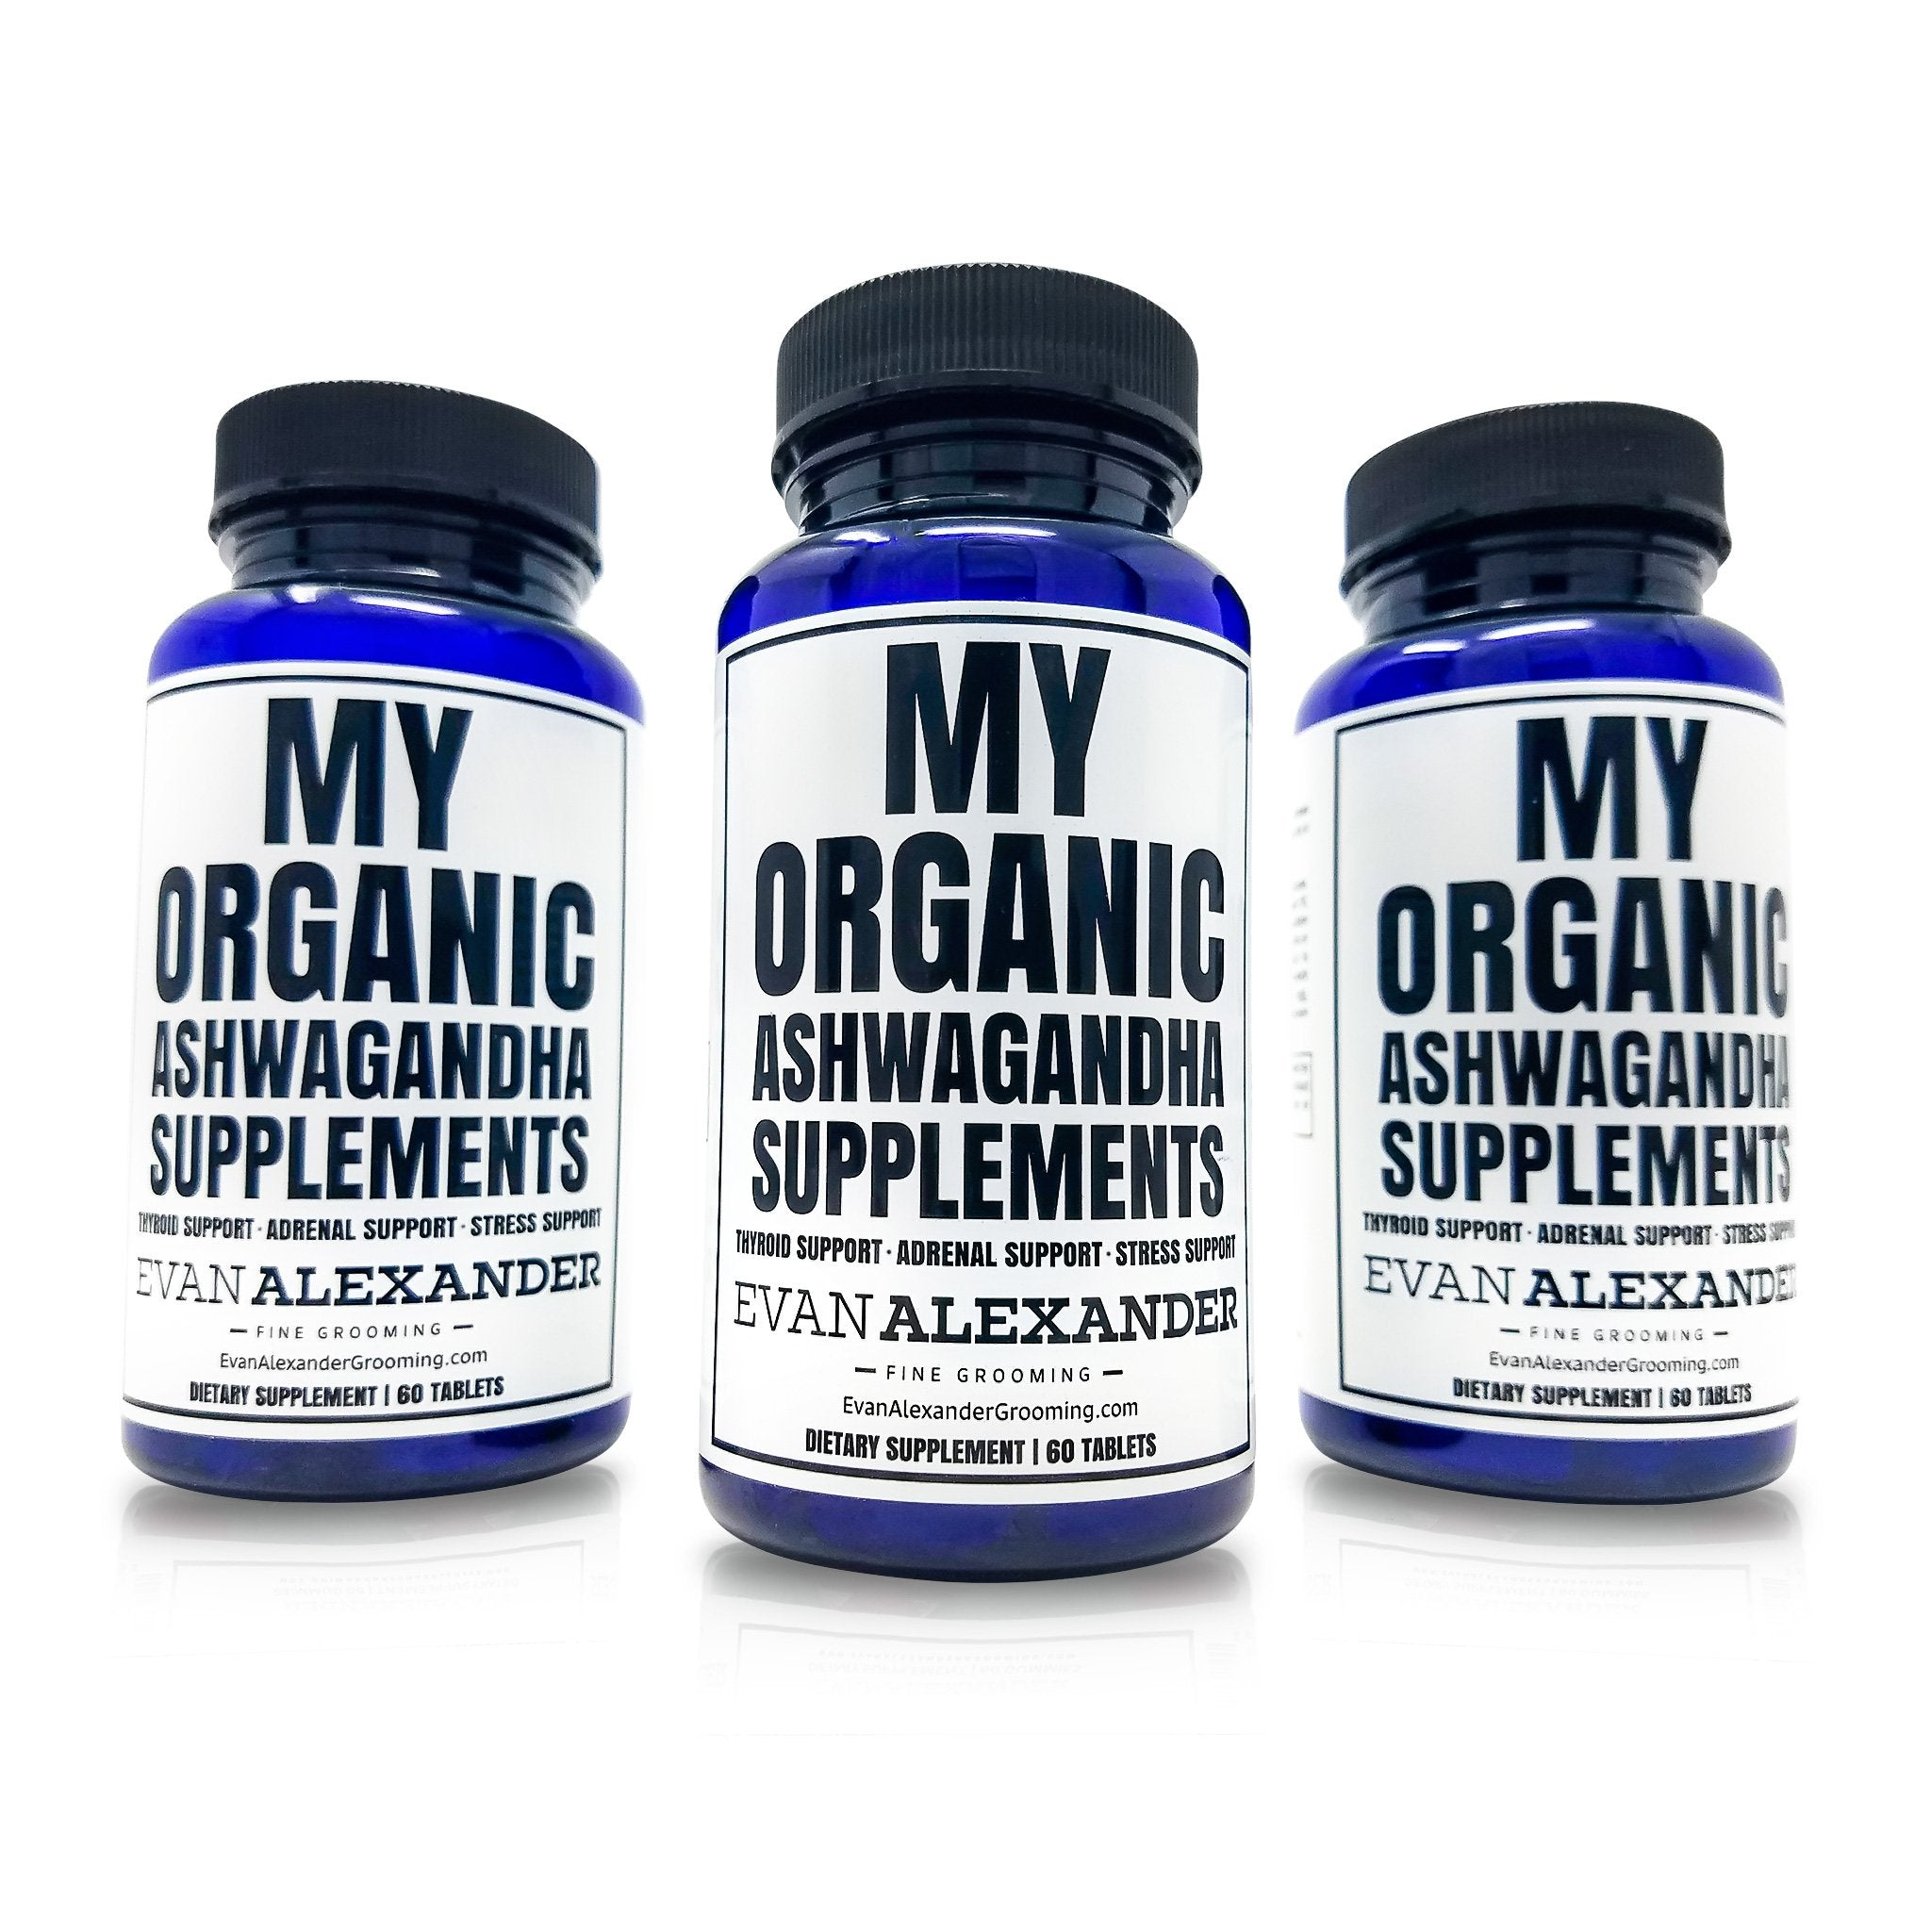 MY ORGANIC ASHWAGANDHA SUPPLEMENTS